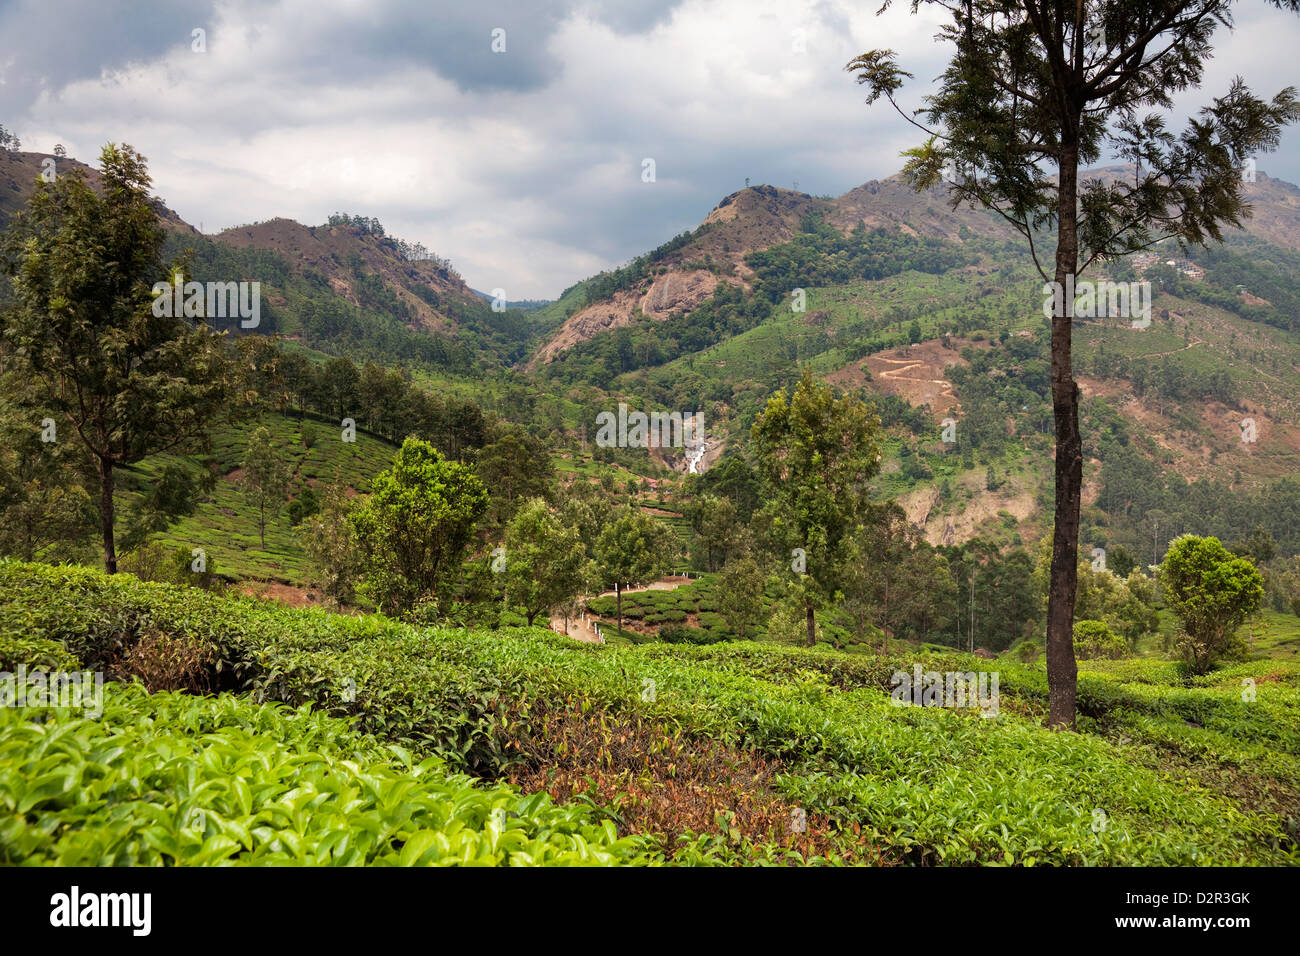 Tea plantations in the mountains of Munnar, Kerala, India, Asia - Stock Image